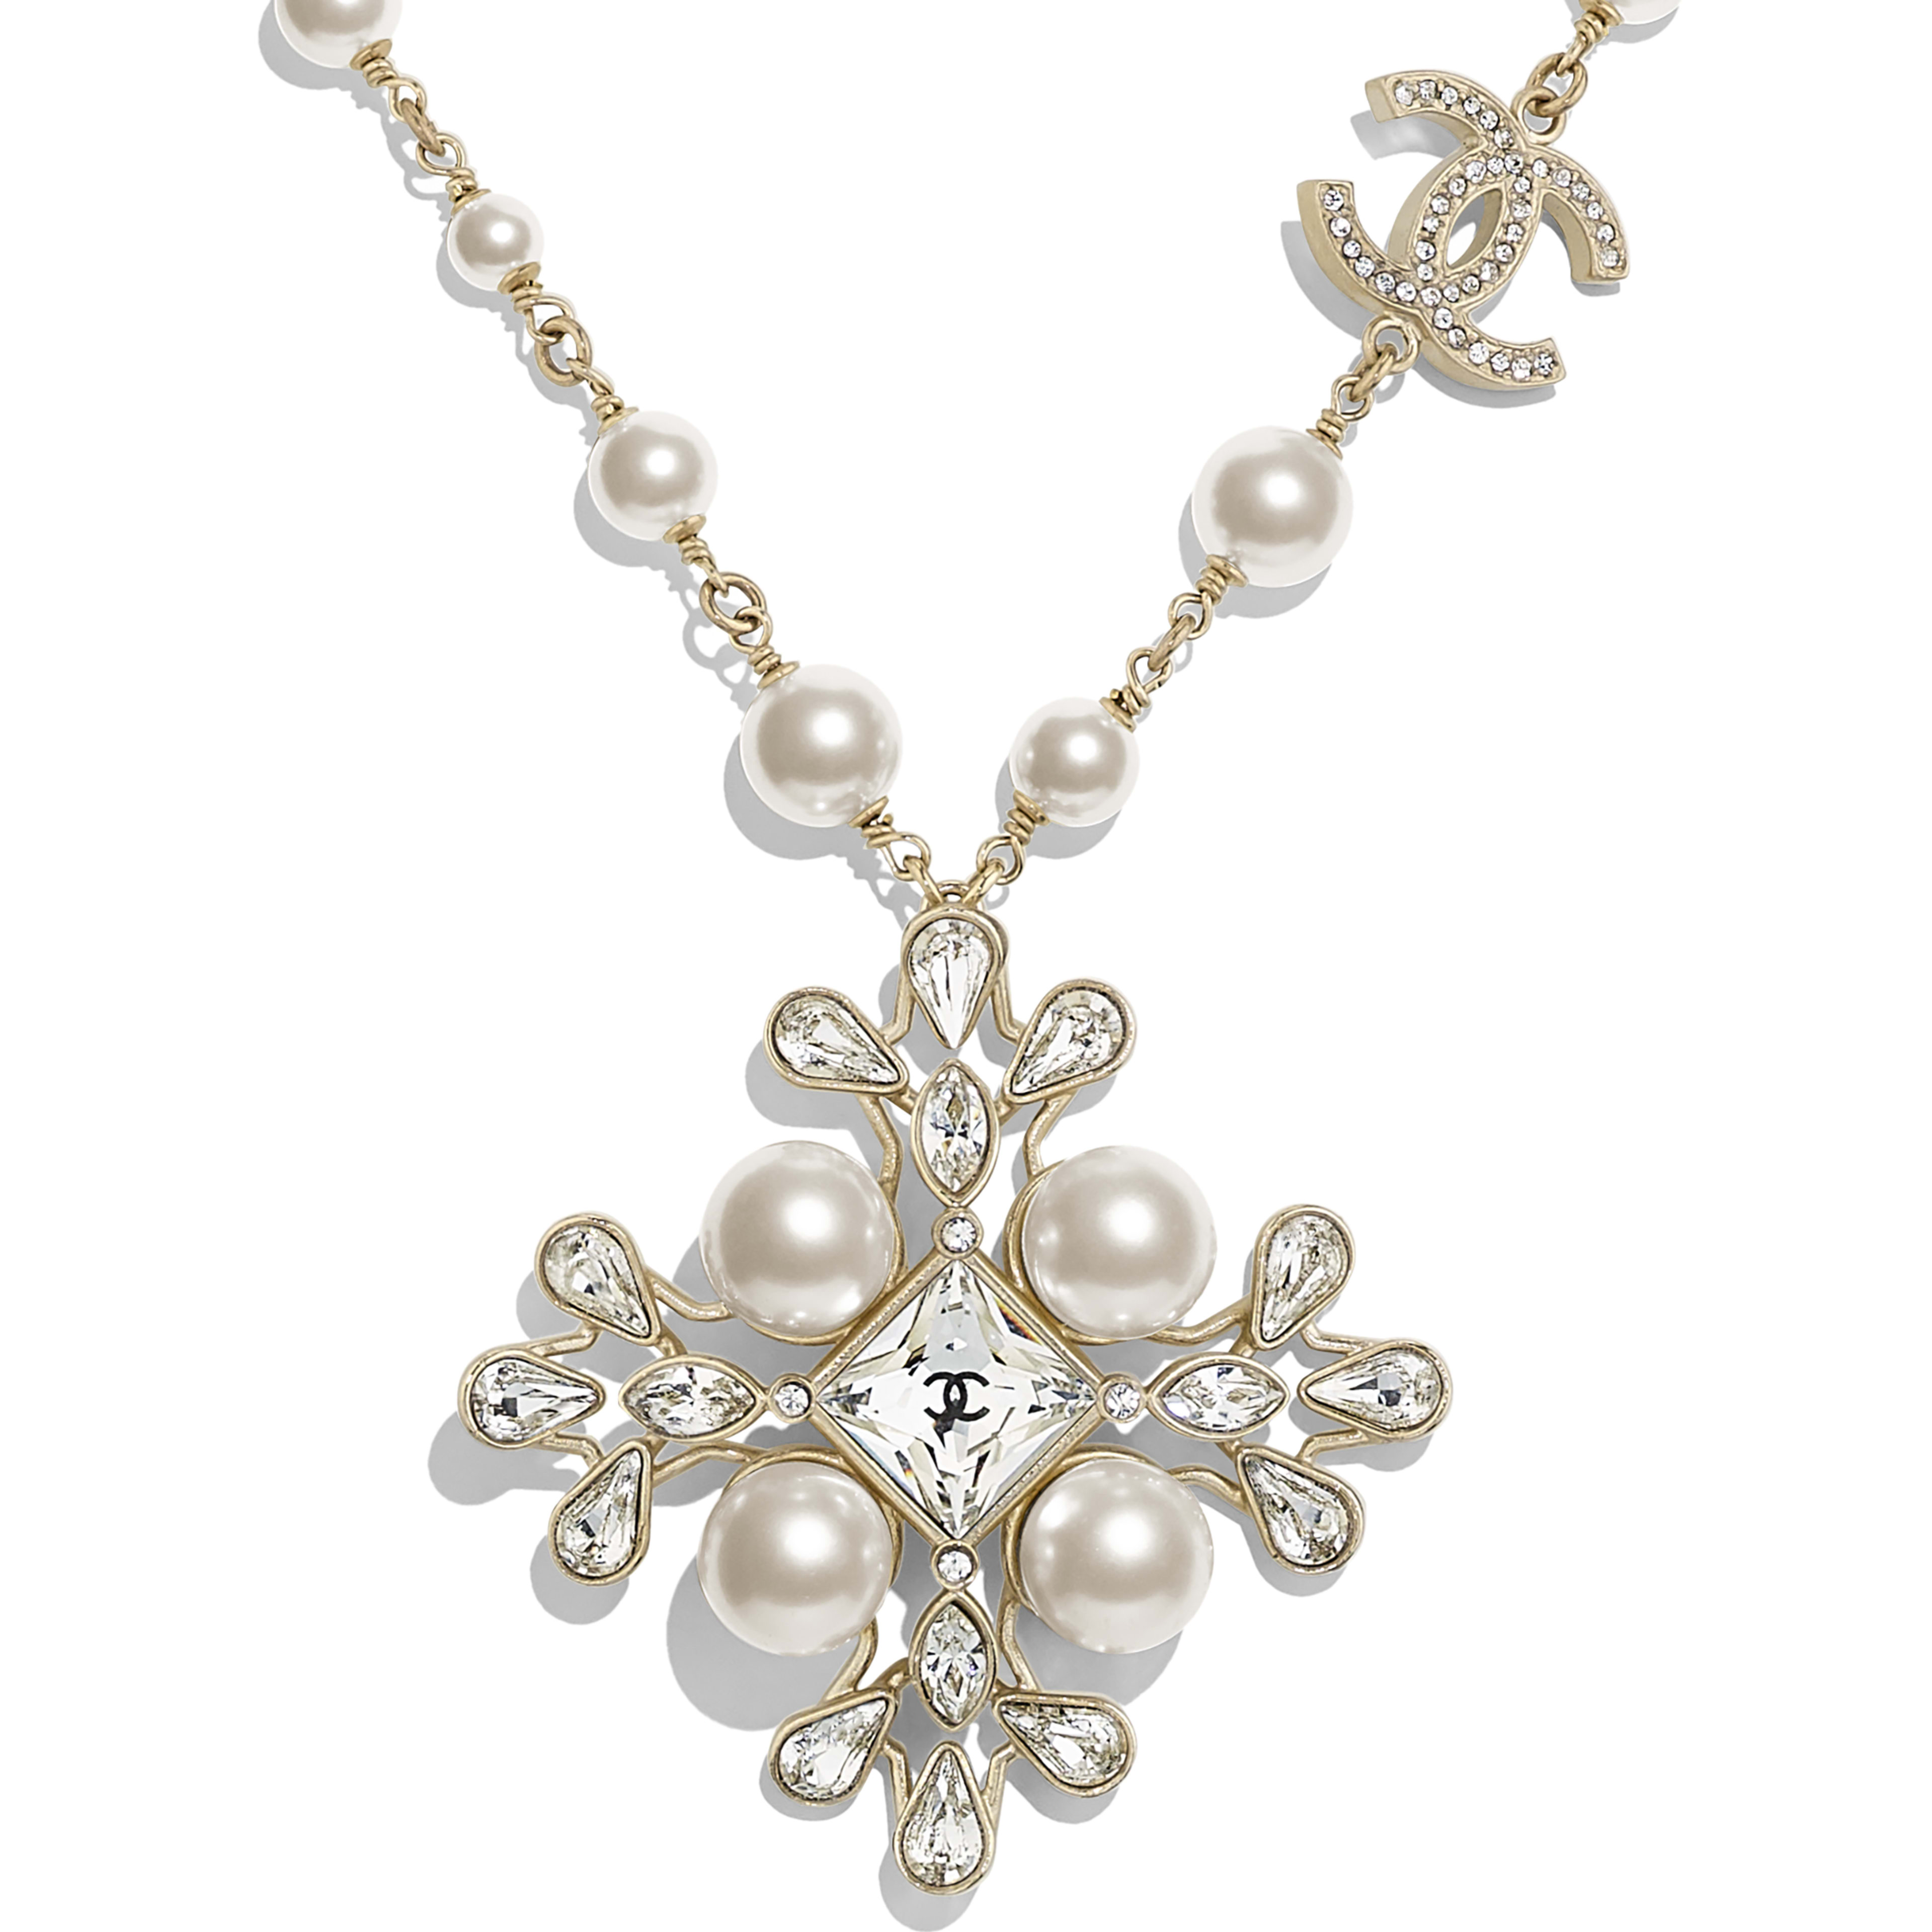 Necklace - Gold, Pearly White & Crystal - Metal, Glass Pearls, Strass & Resin - Other view - see full sized version